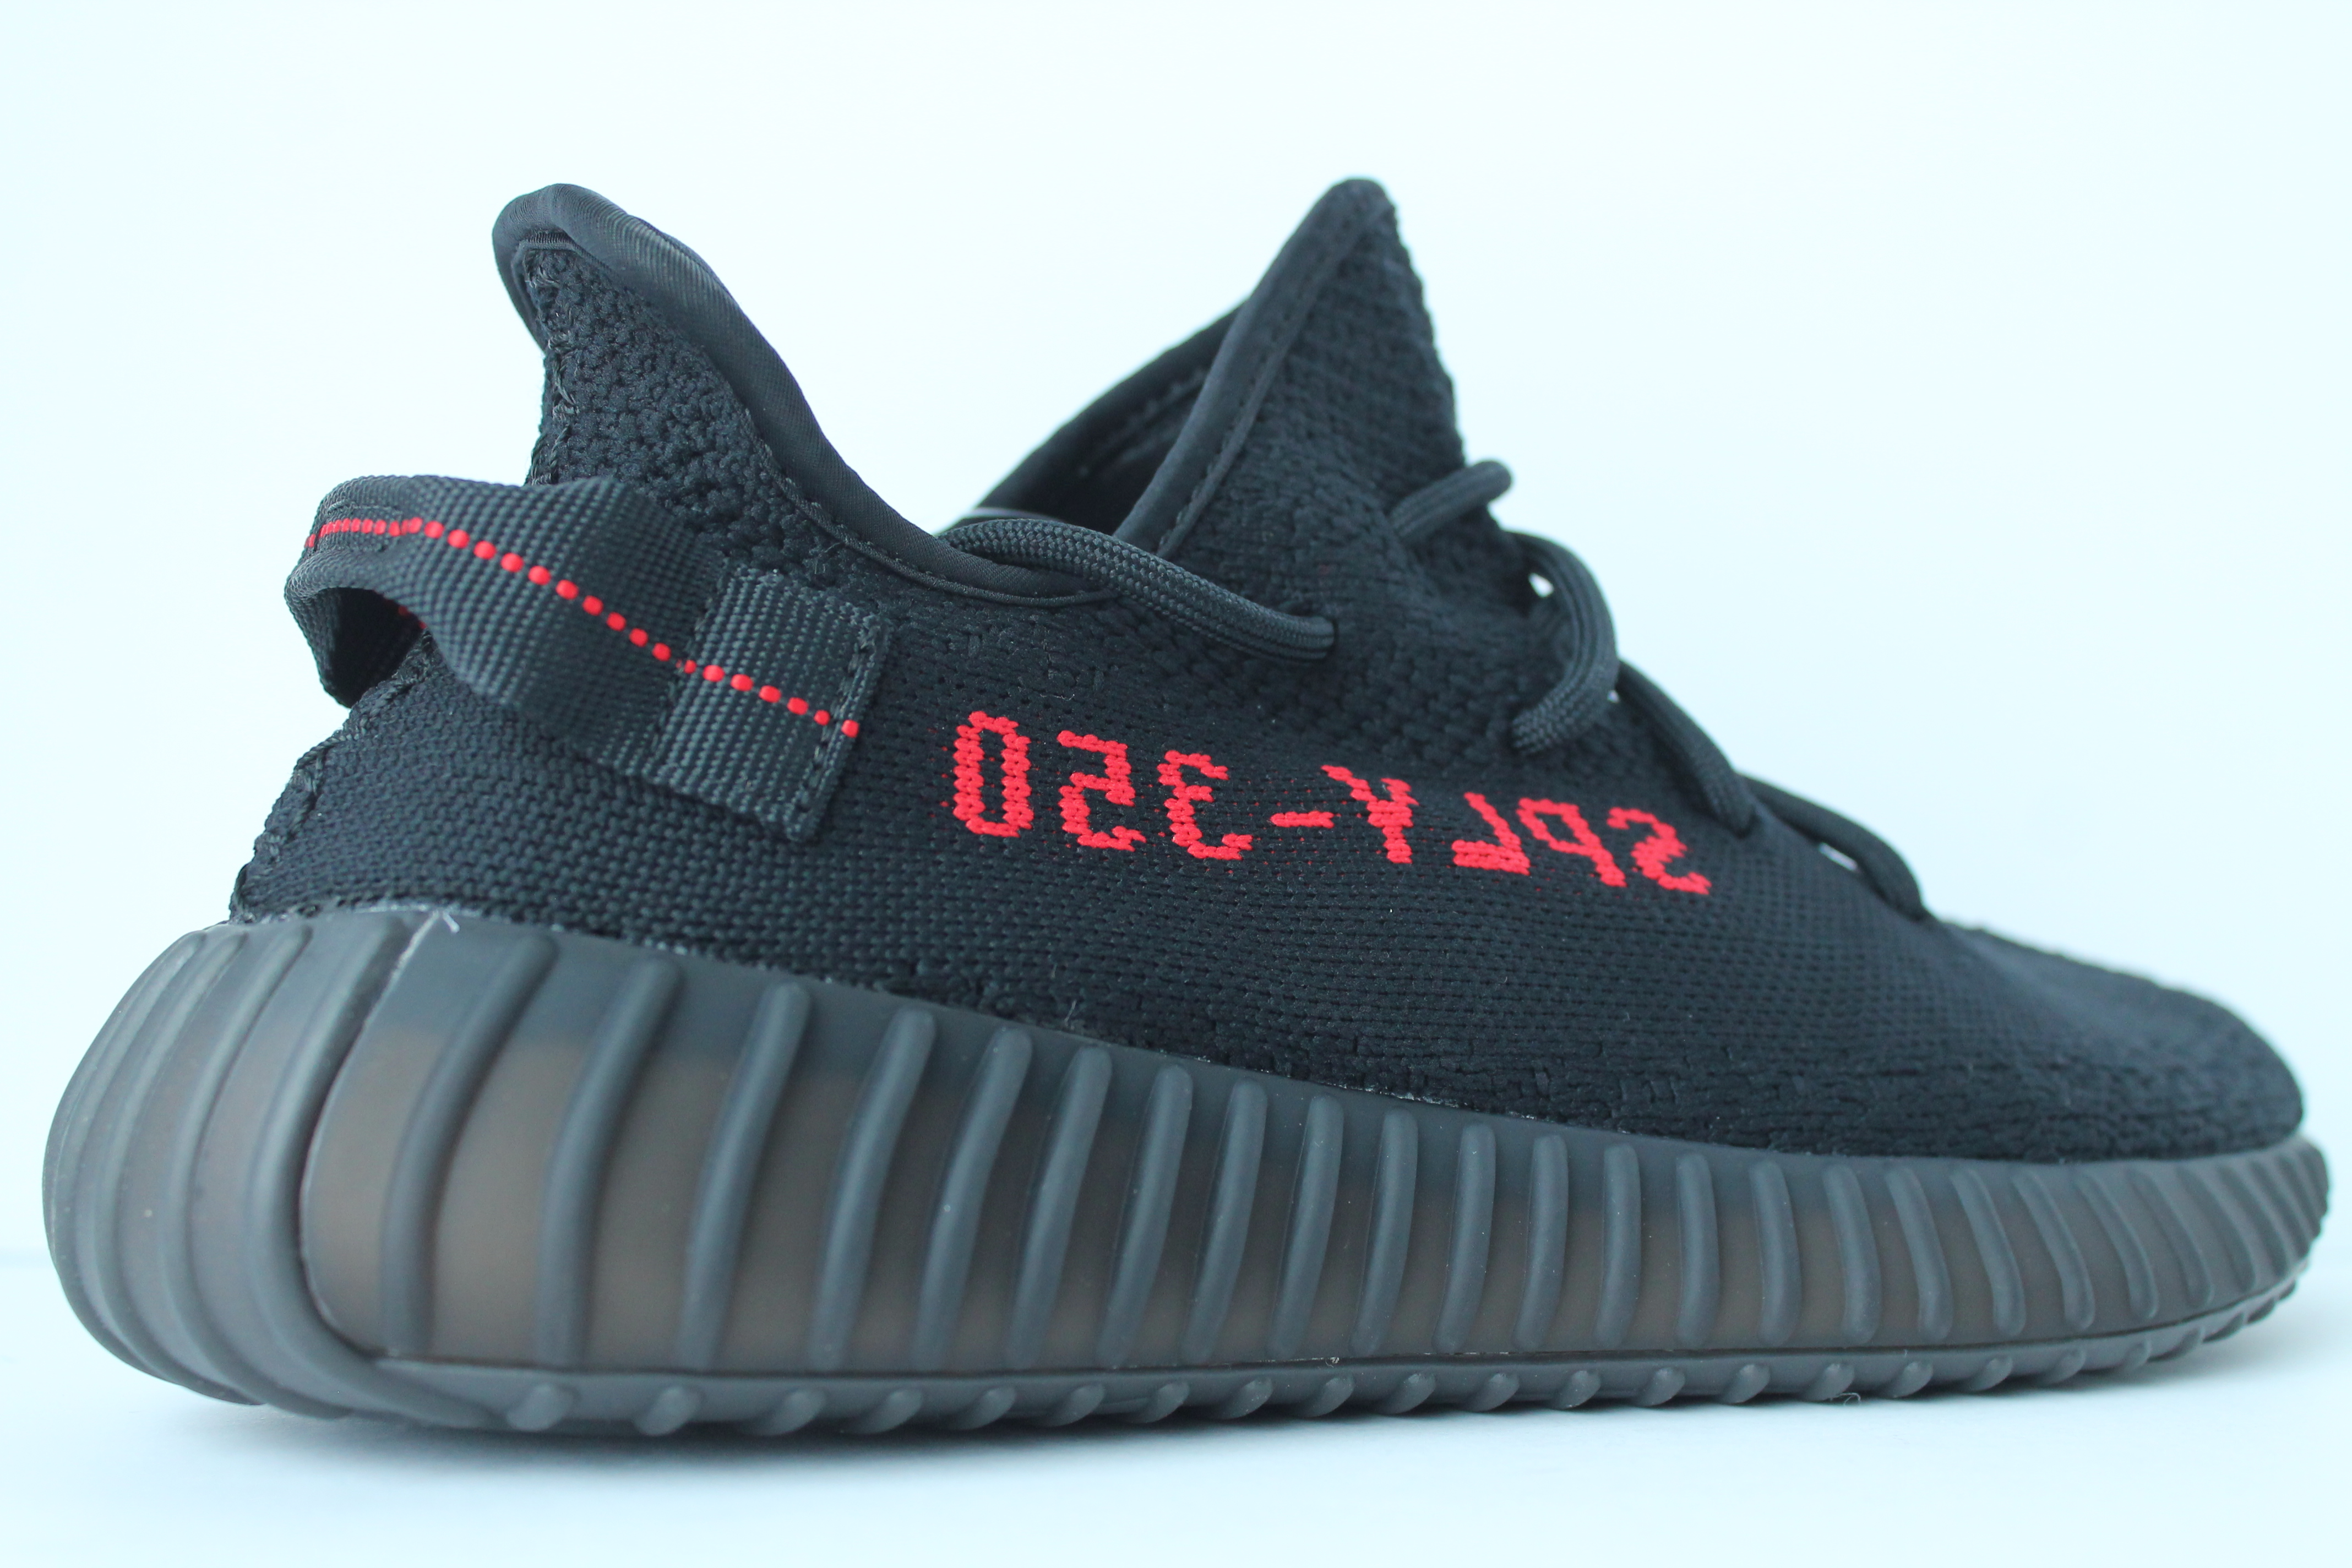 7e36983cd ... Bred Adidas Yeezy Boost 350 v2 ...